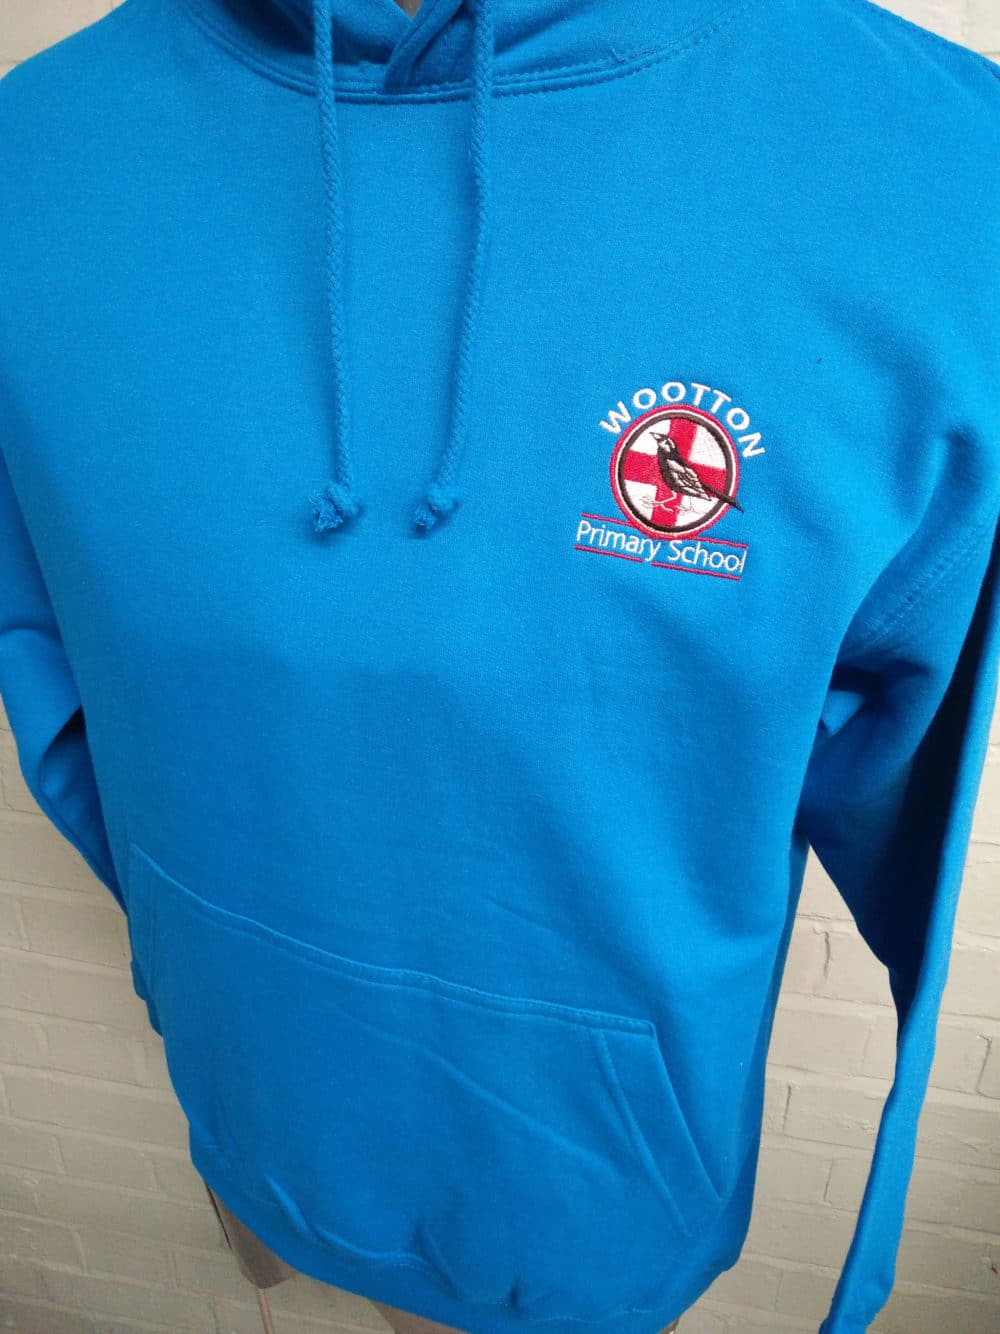 Wootton Primary School Leavers Hoodies in Blue Class of 201